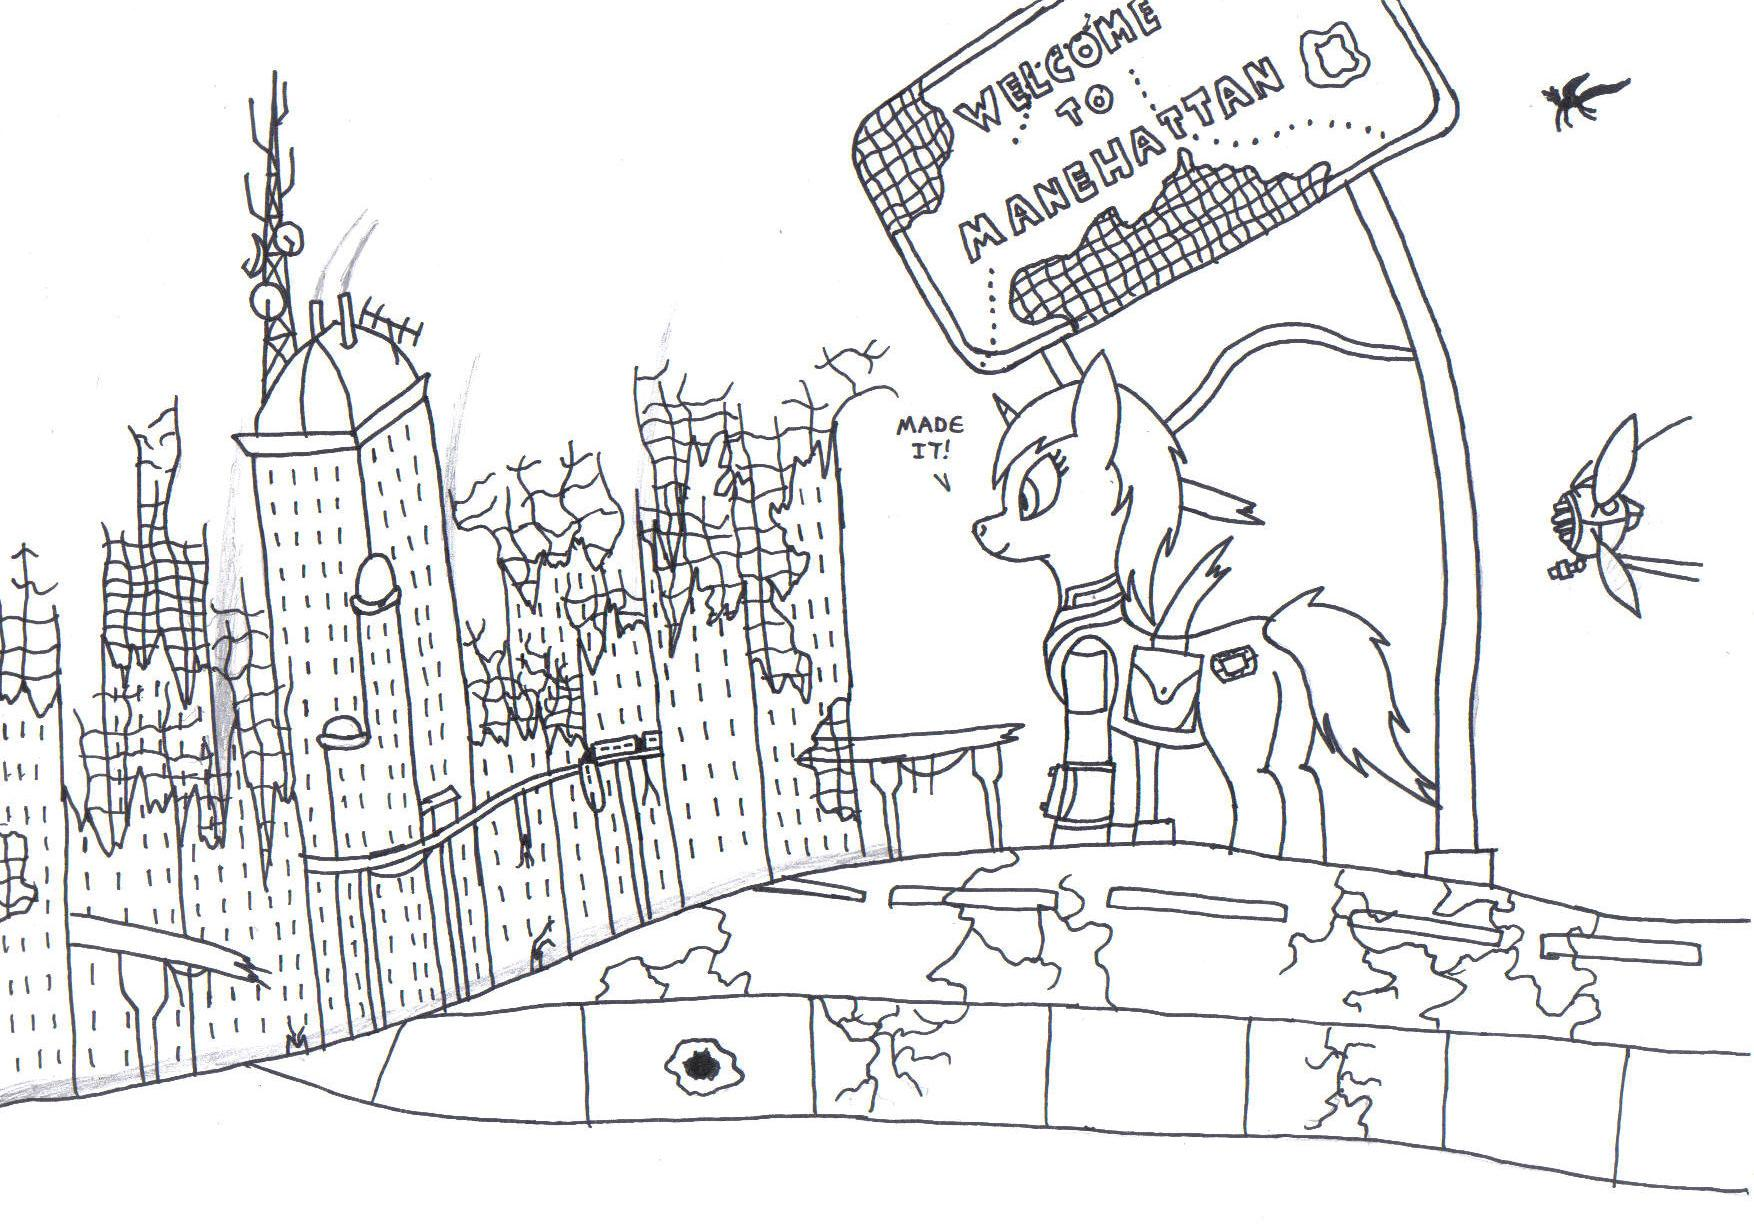 Welcome to Manehatten